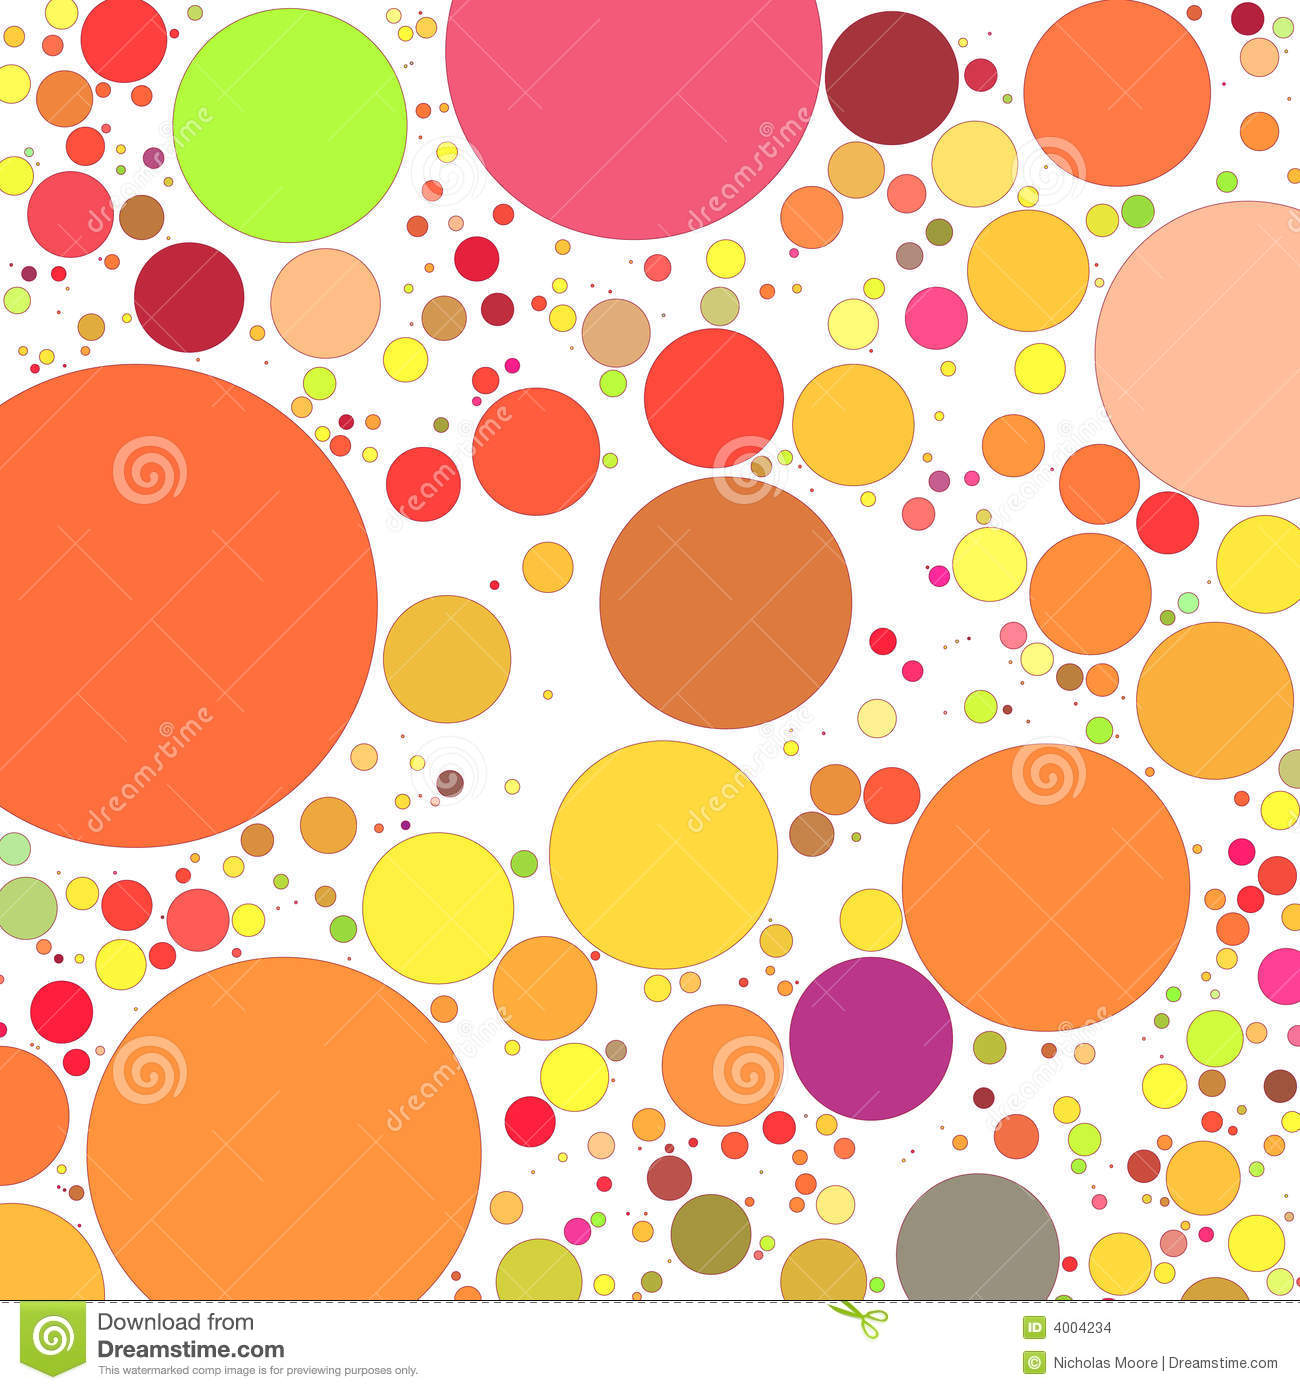 Retro circles background stock vector. Image of texture ... Retro Circles Background